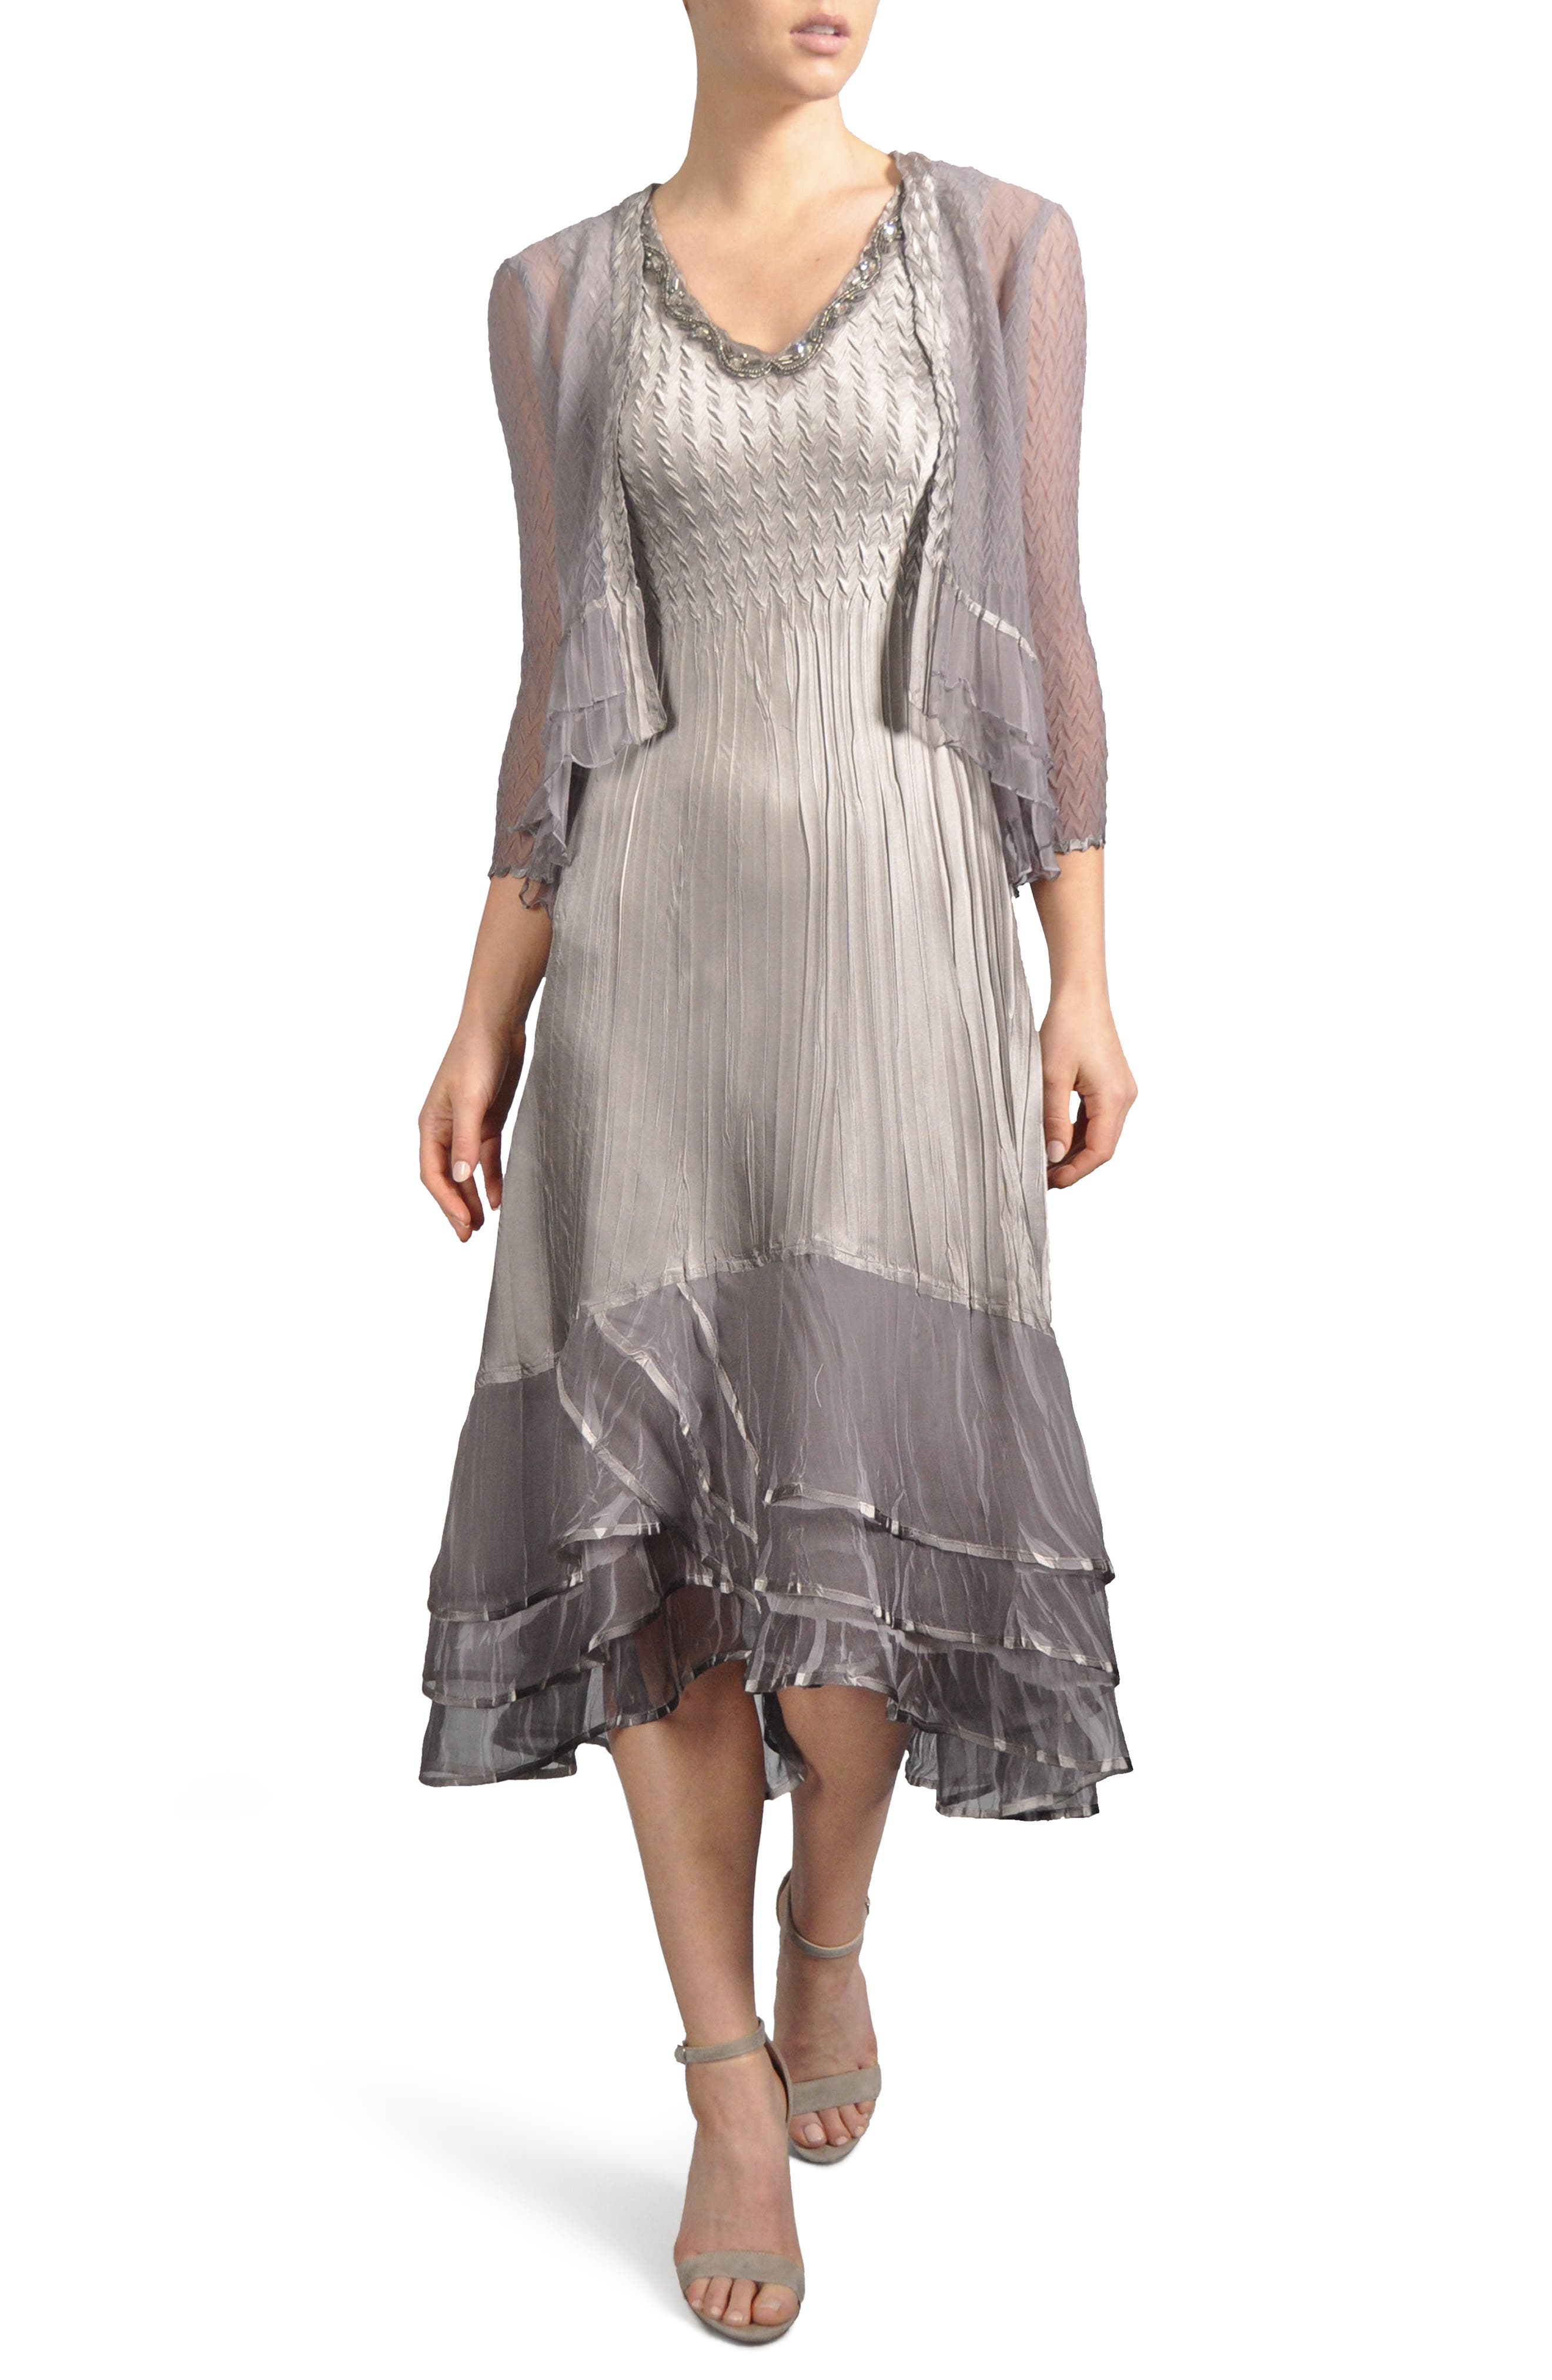 Embellished Tiered Hem Dress With Jacket,                             Main thumbnail 1, color,                             Oyster Smoke Ombre